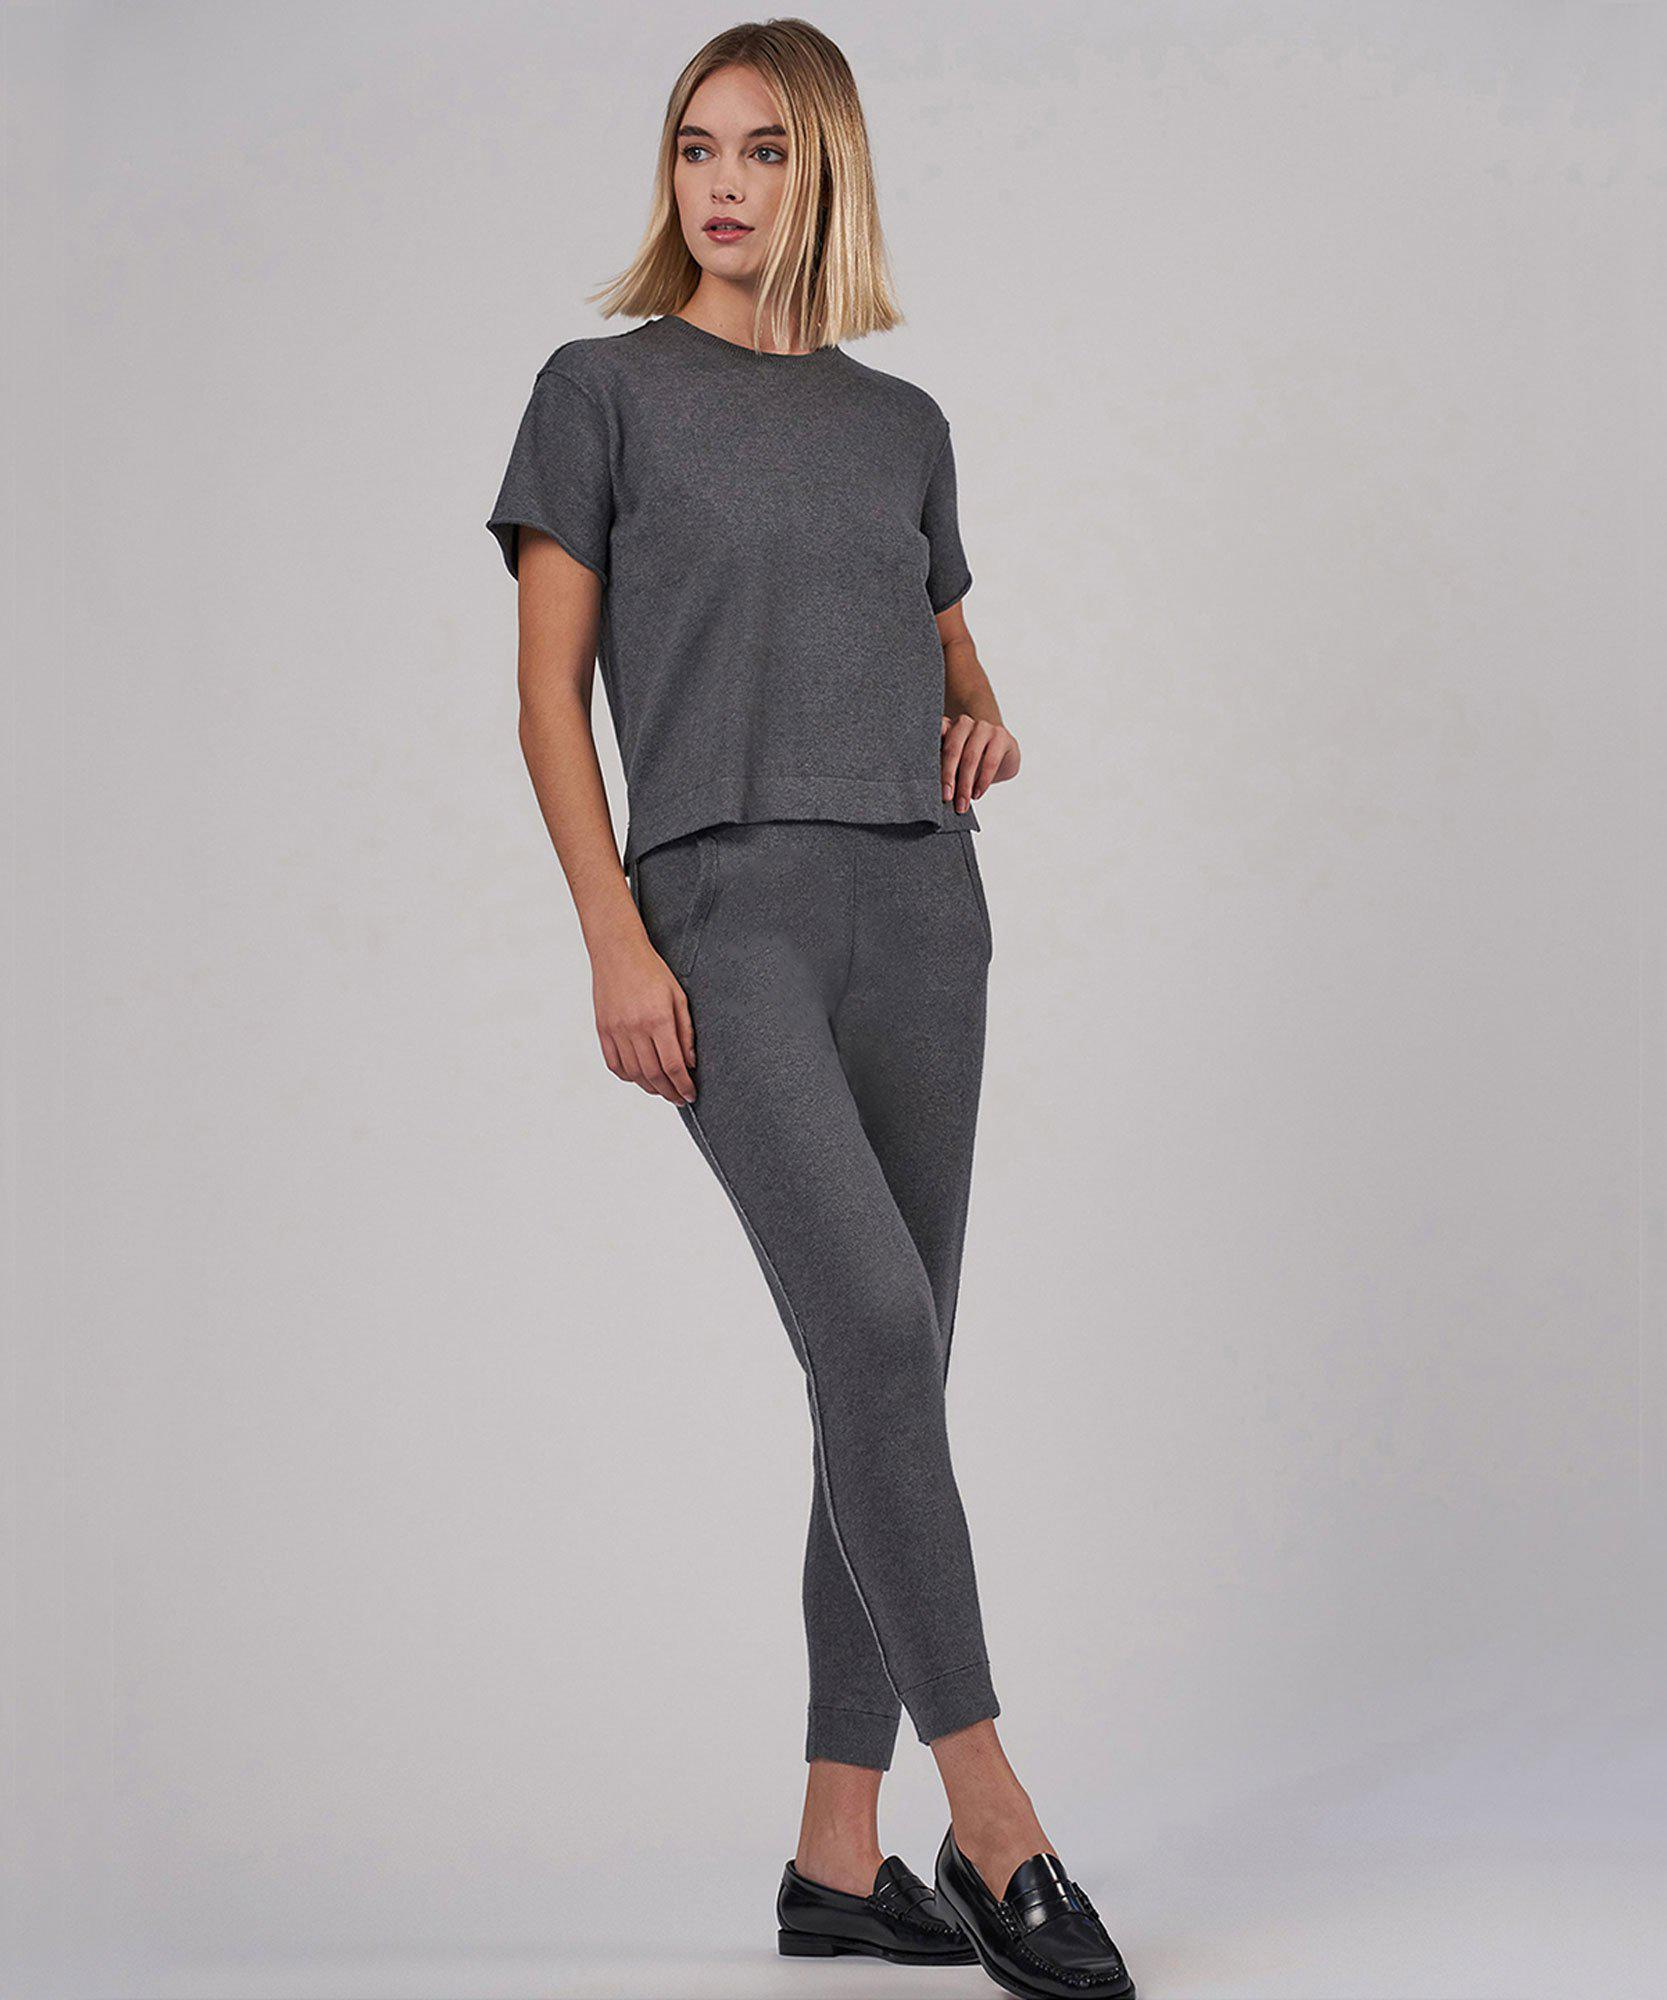 Cotton Cashmere Sweater Pant - Heather Charcoal 3